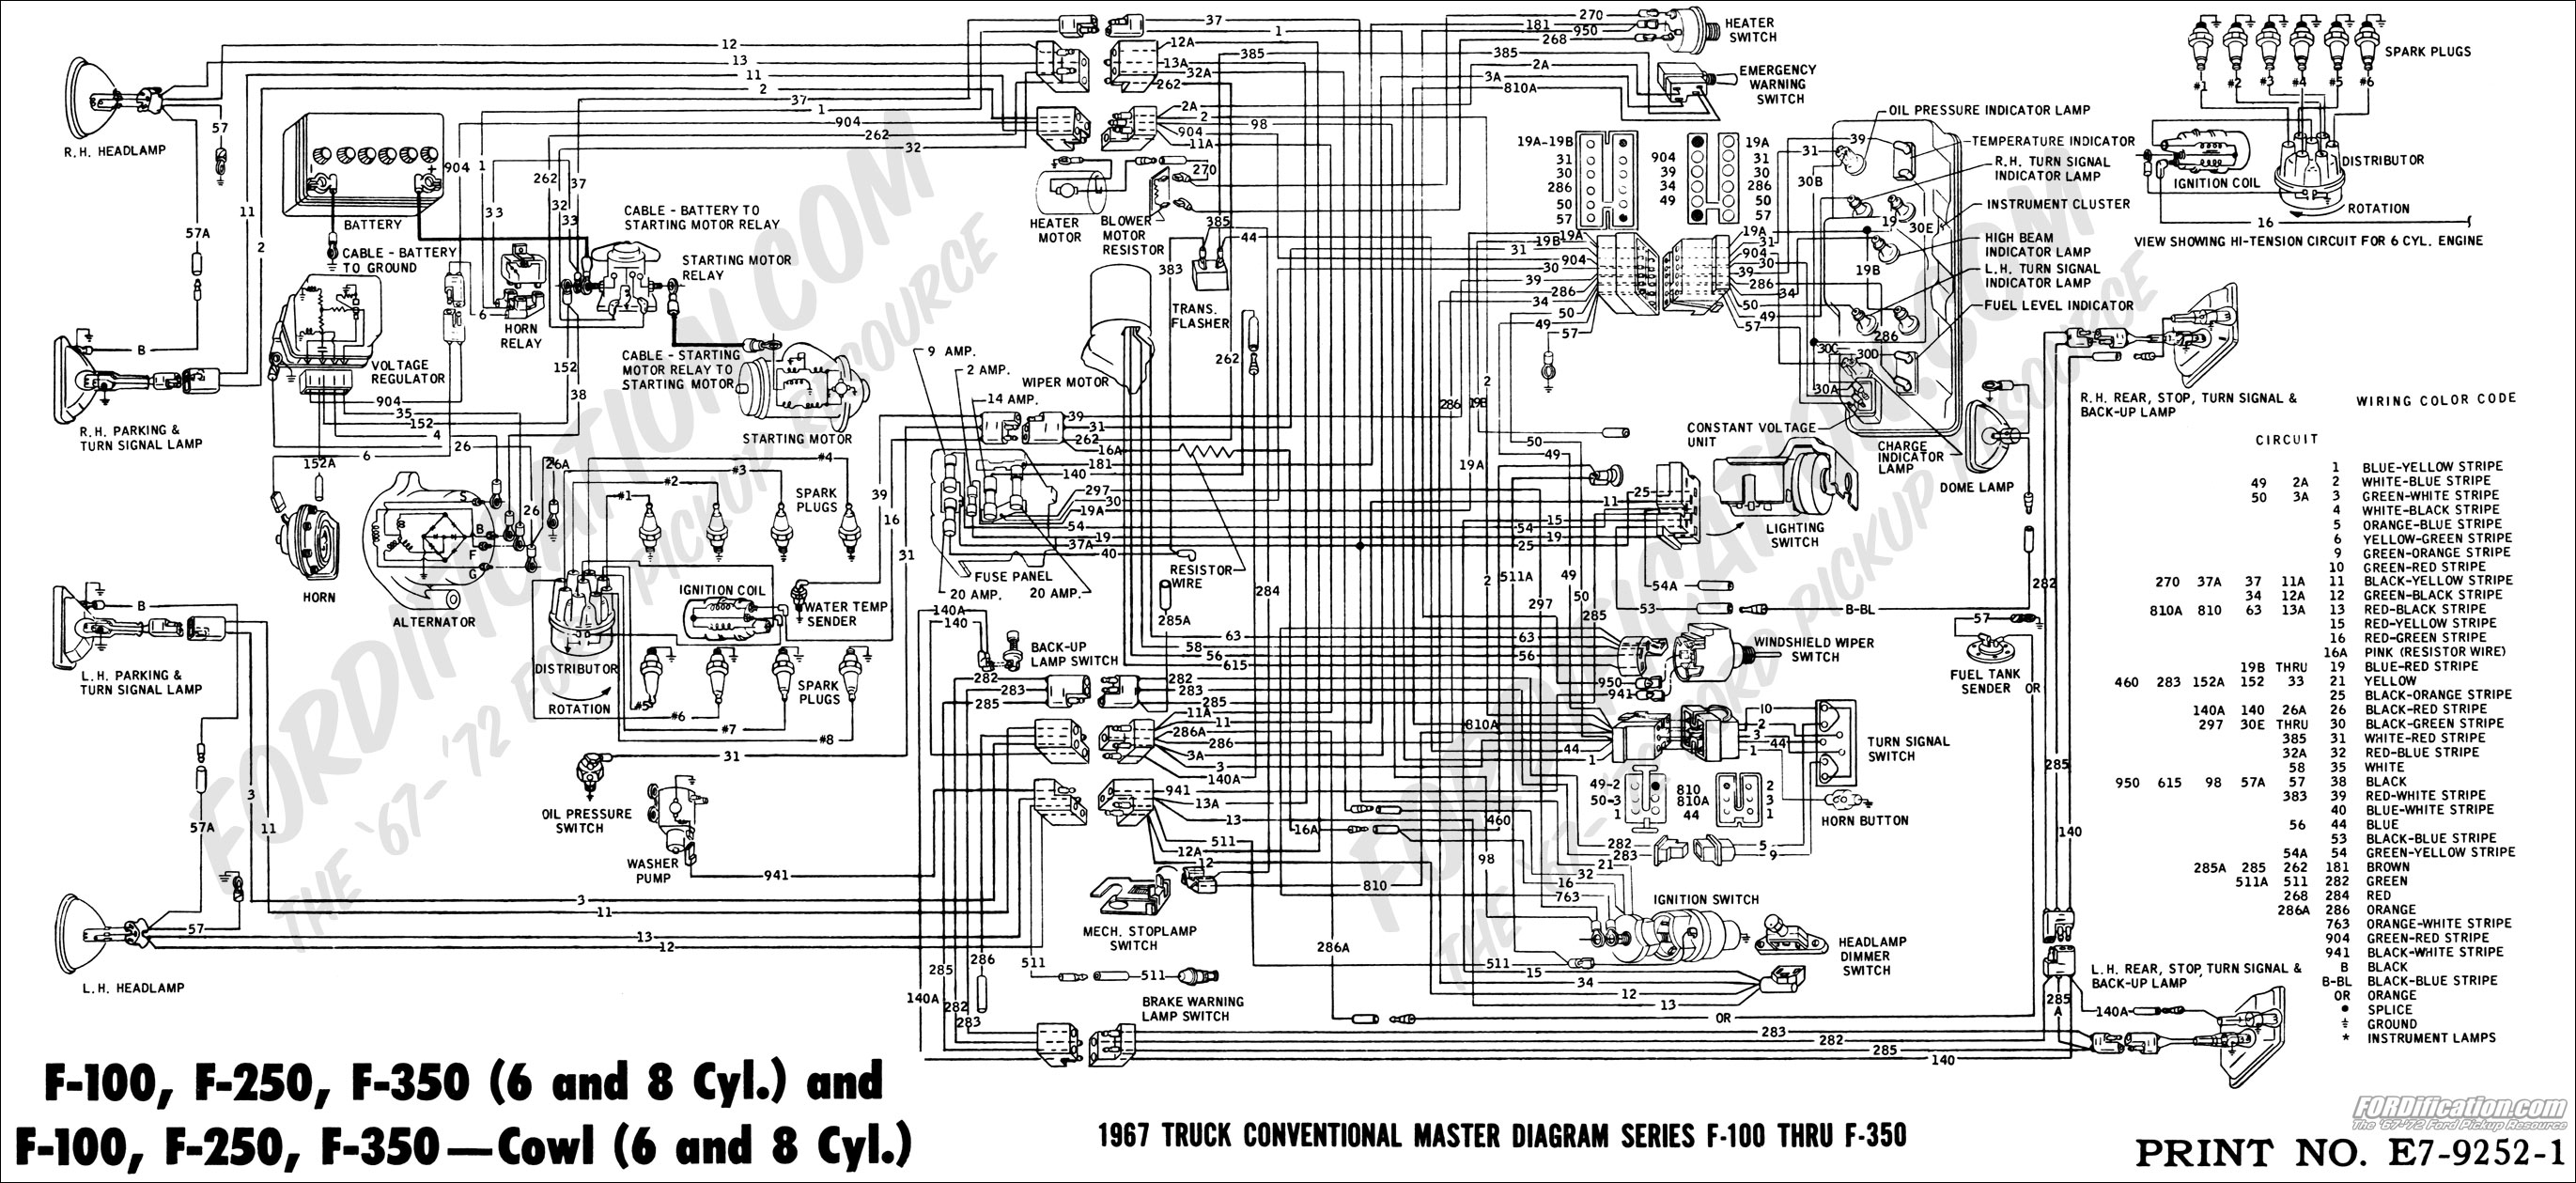 67masterdiagram ford truck technical drawings and schematics section h wiring 94 ford f150 wiring diagram at suagrazia.org